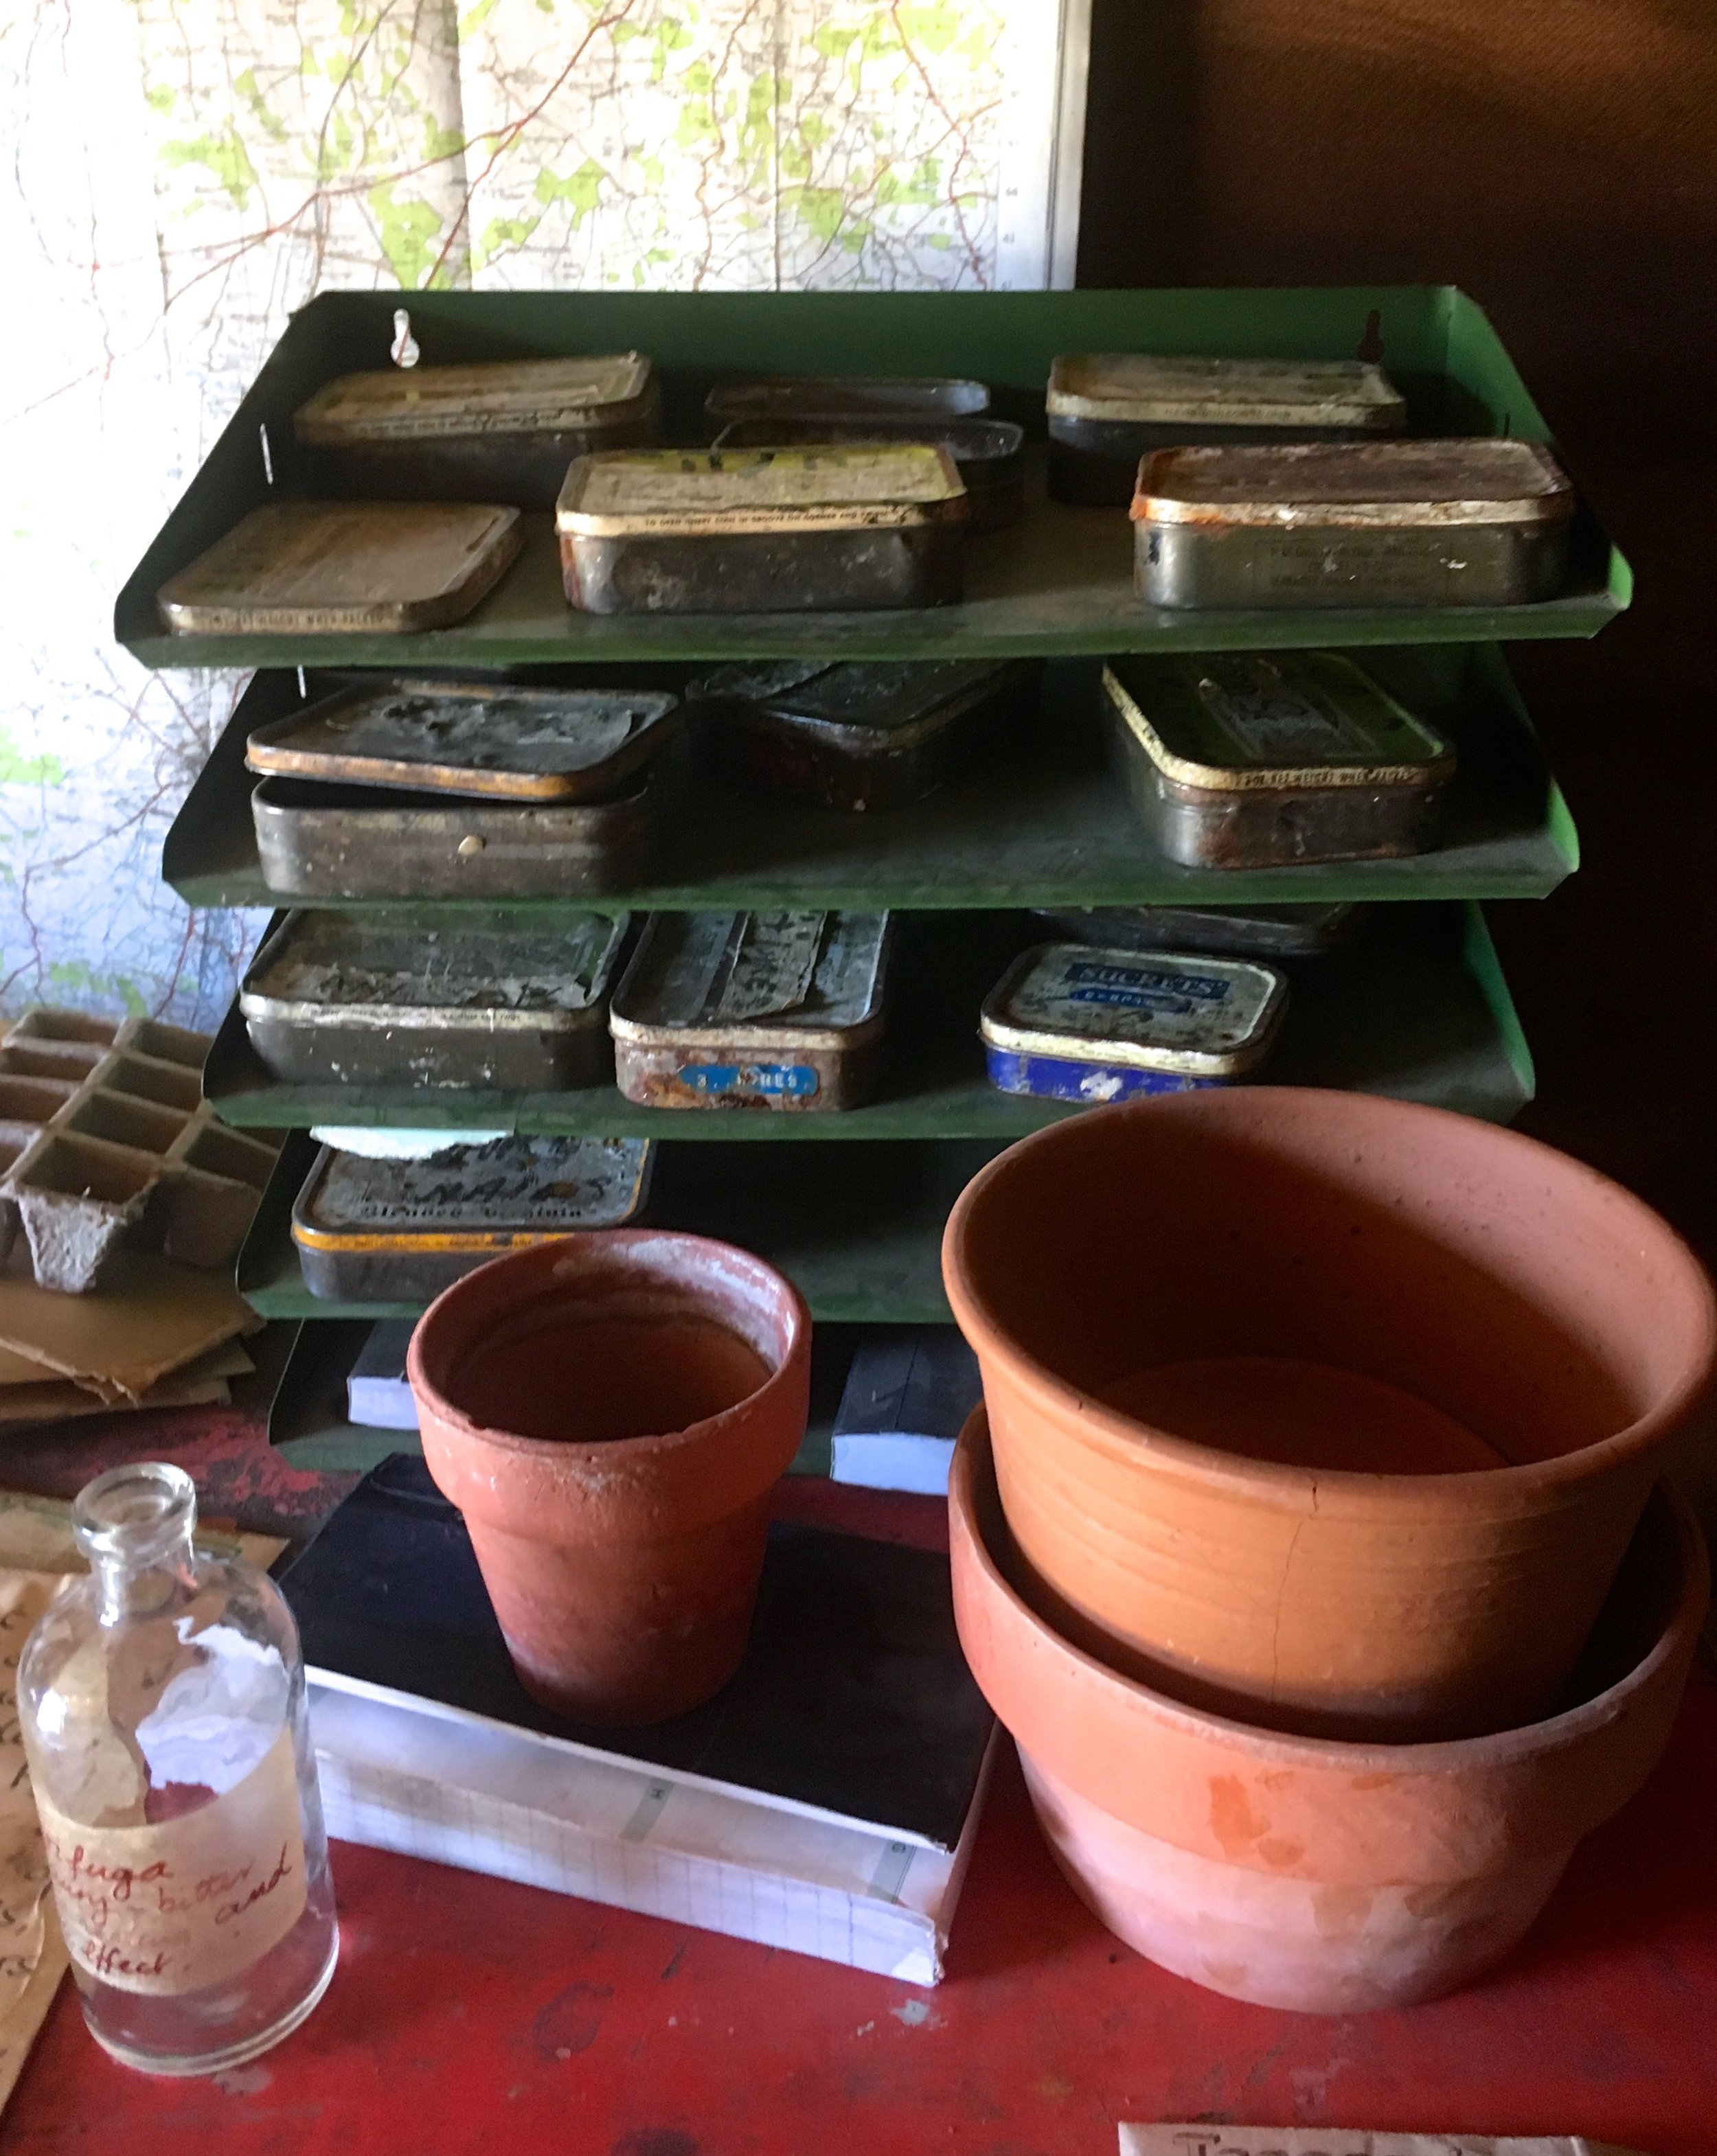 Old tobacco tins, no doubt storing seed, in the in tray and terracotta pots